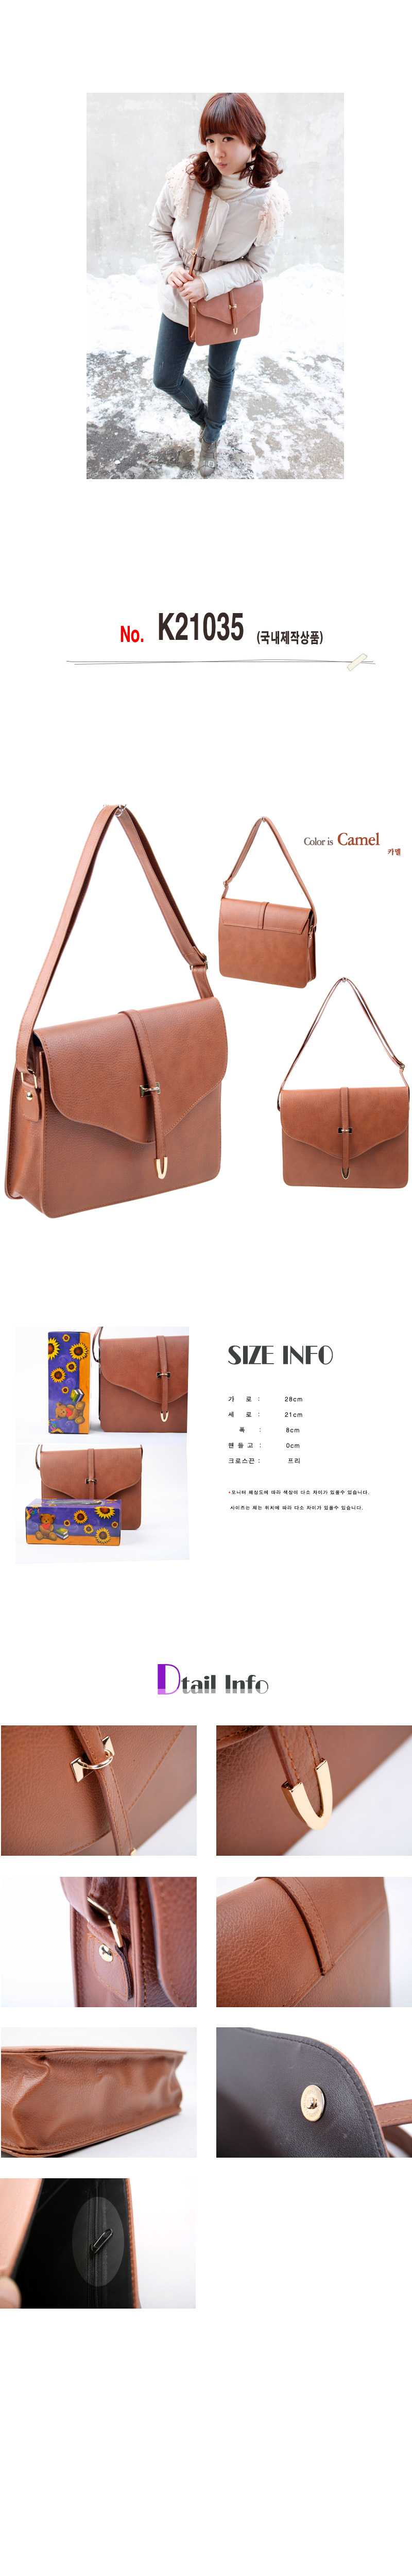 handbag no.K21035view